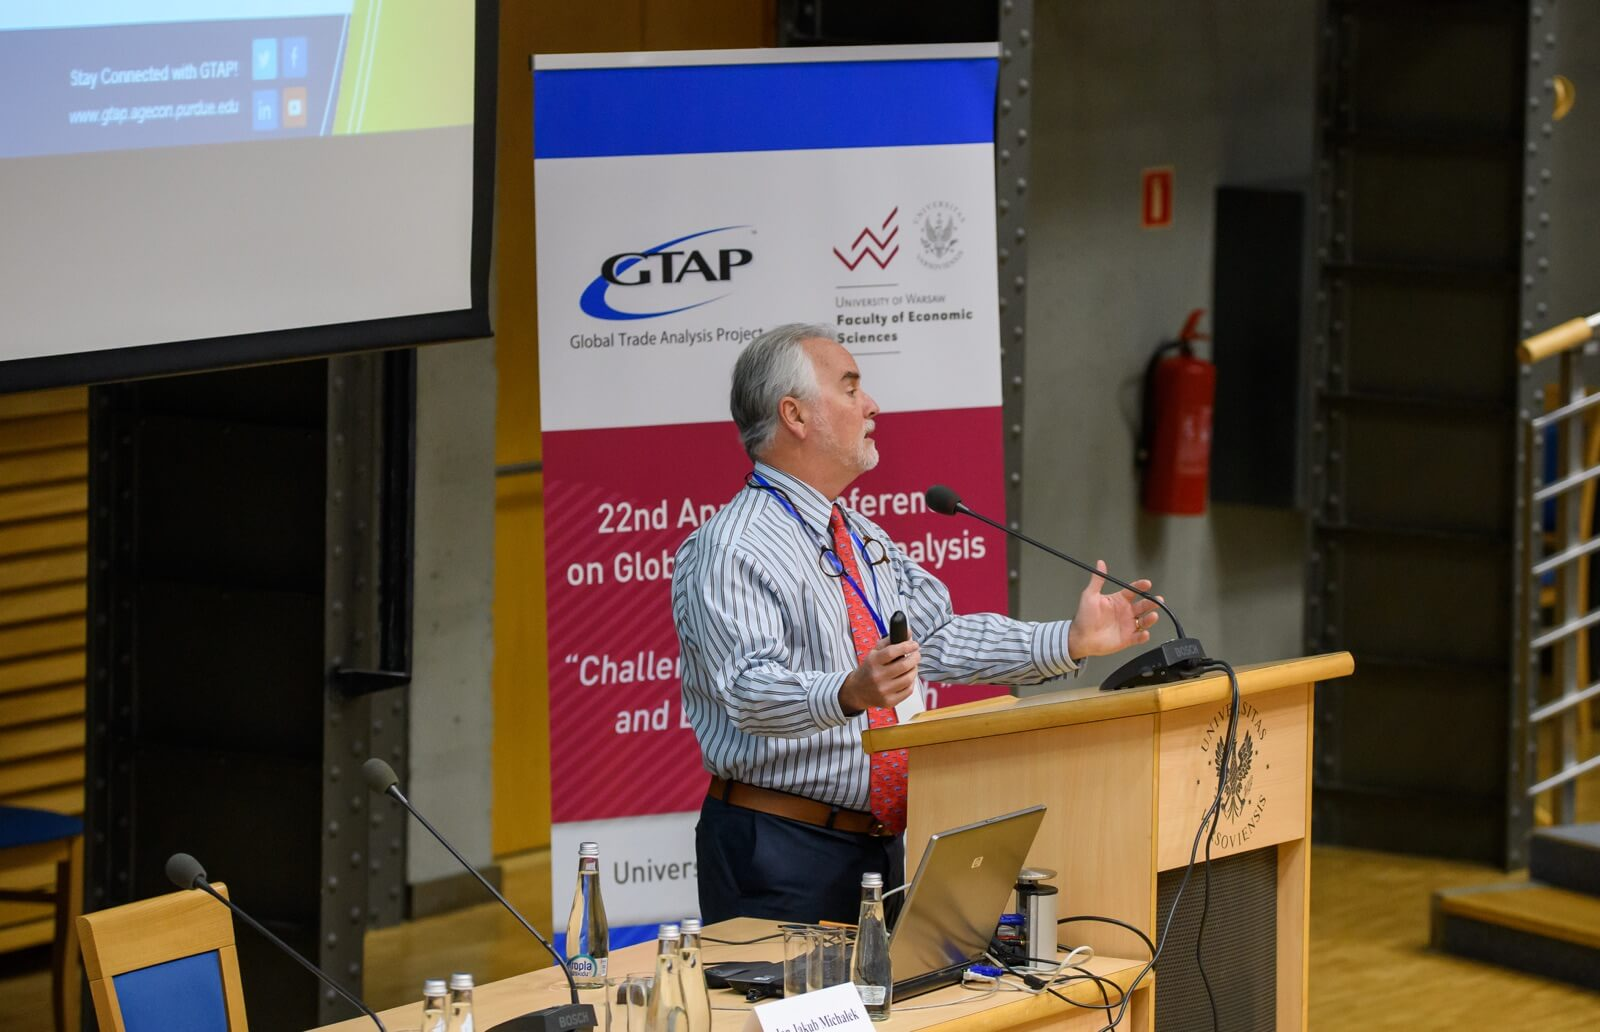 Dominique van der Mensbrugghe presenting at the recent GTAP conference